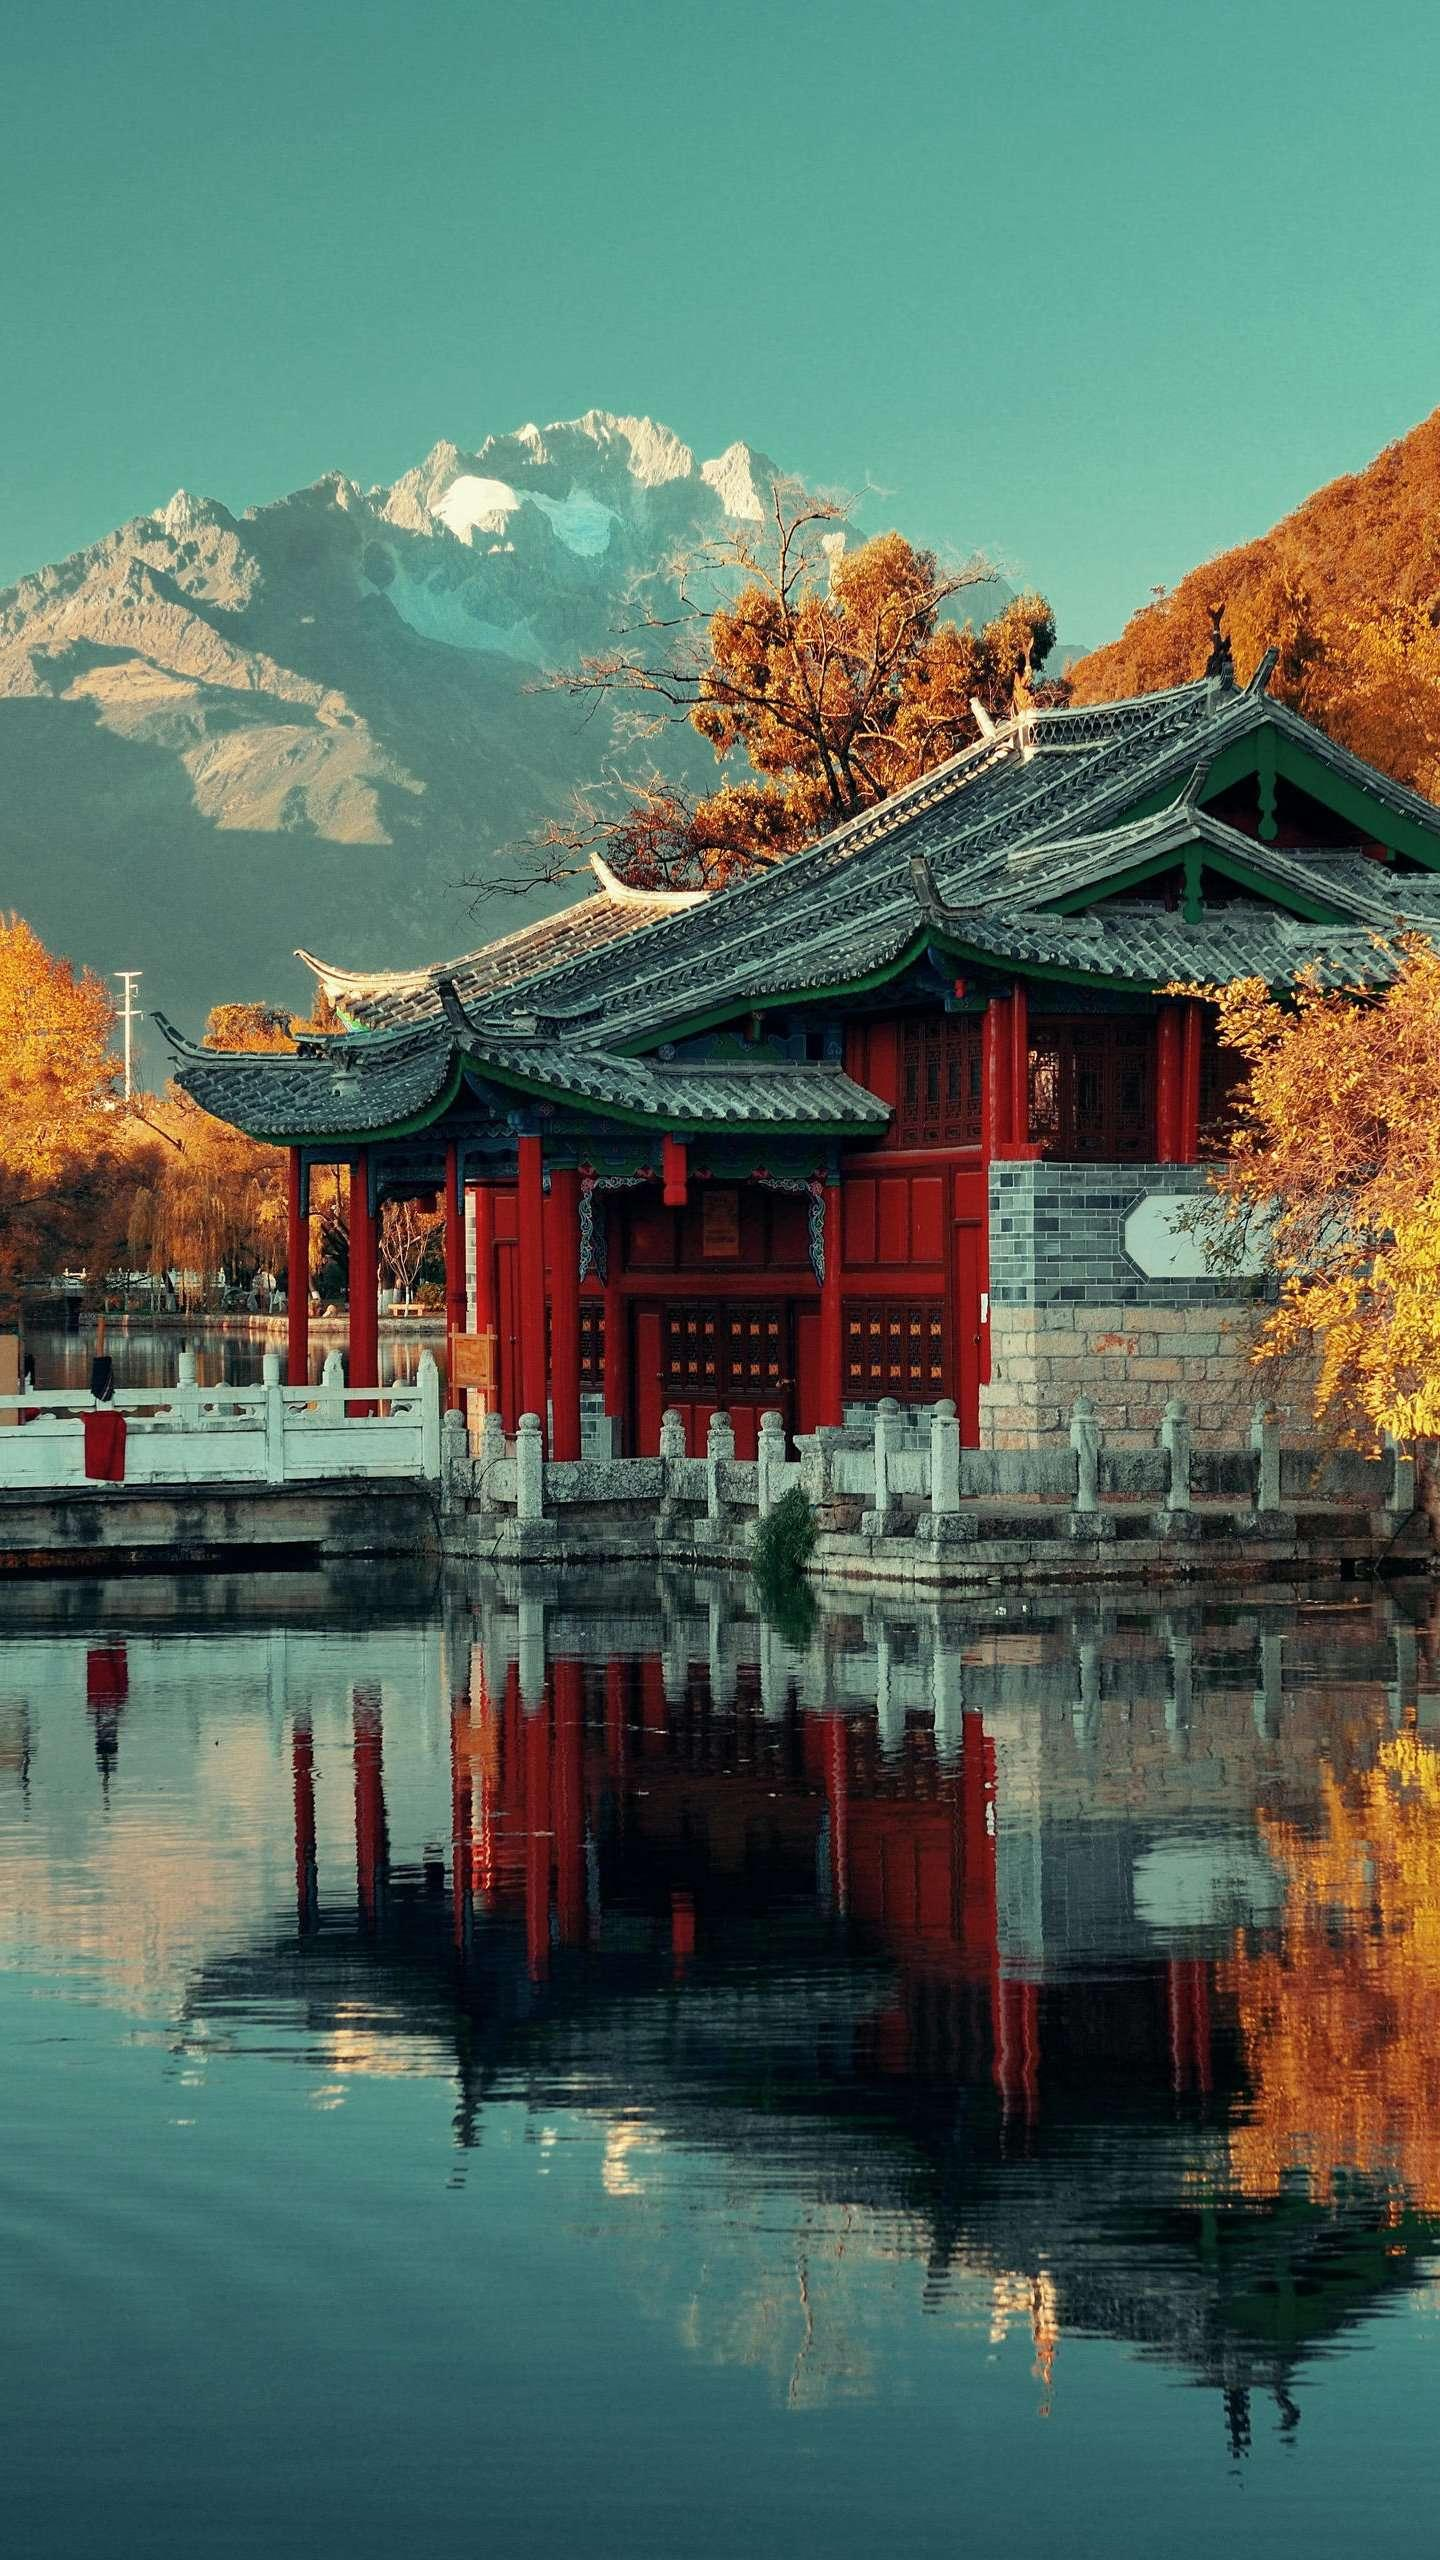 Autumn in Black Dragon Pool. Black Dragon Pool is located at the foot of the North Xiangshan Mountain in the ancient city of Lijiang. The lake is clear and transparent, and the scenery is like a fairyland.